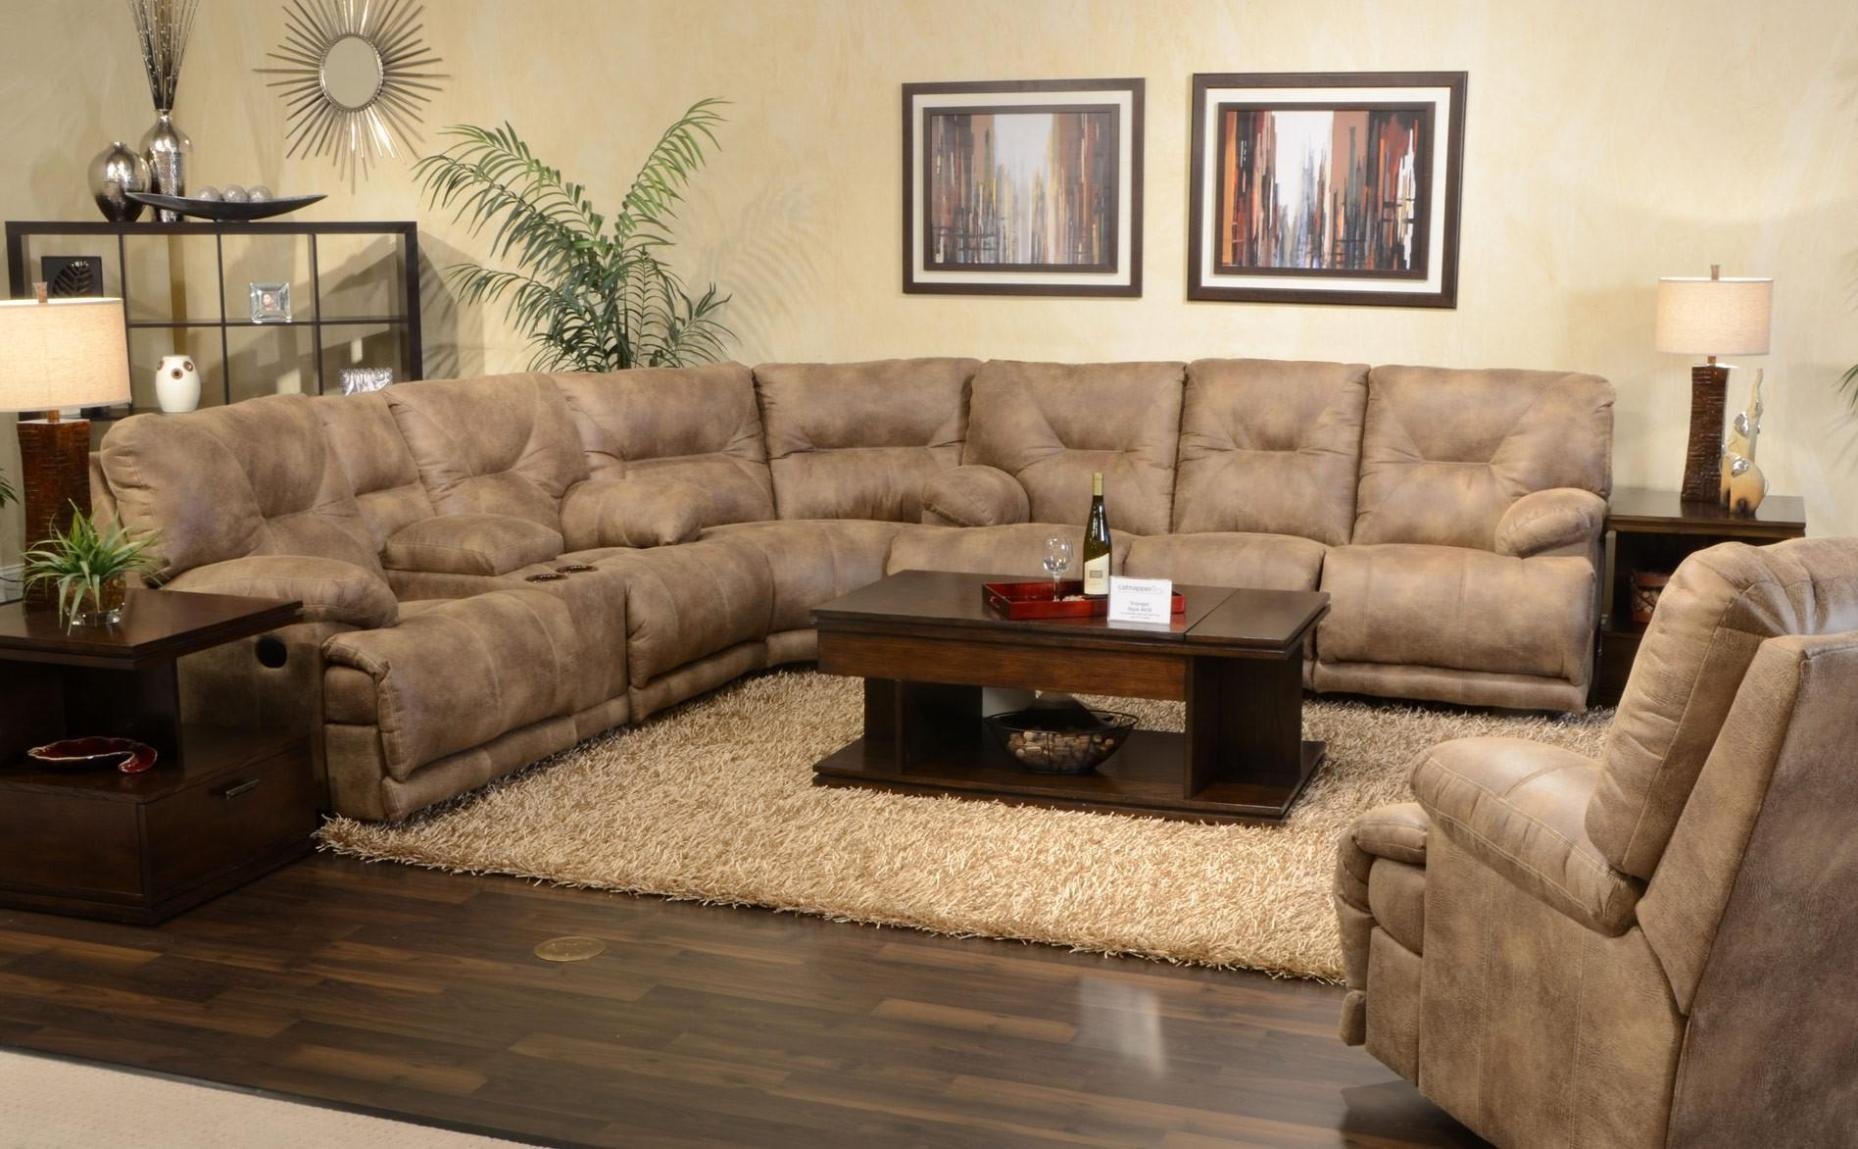 Best Slipcovers For Reclining Sectional Sofas Intended For Jedd Fabric Reclining Sectional Sofa (View 6 of 20)